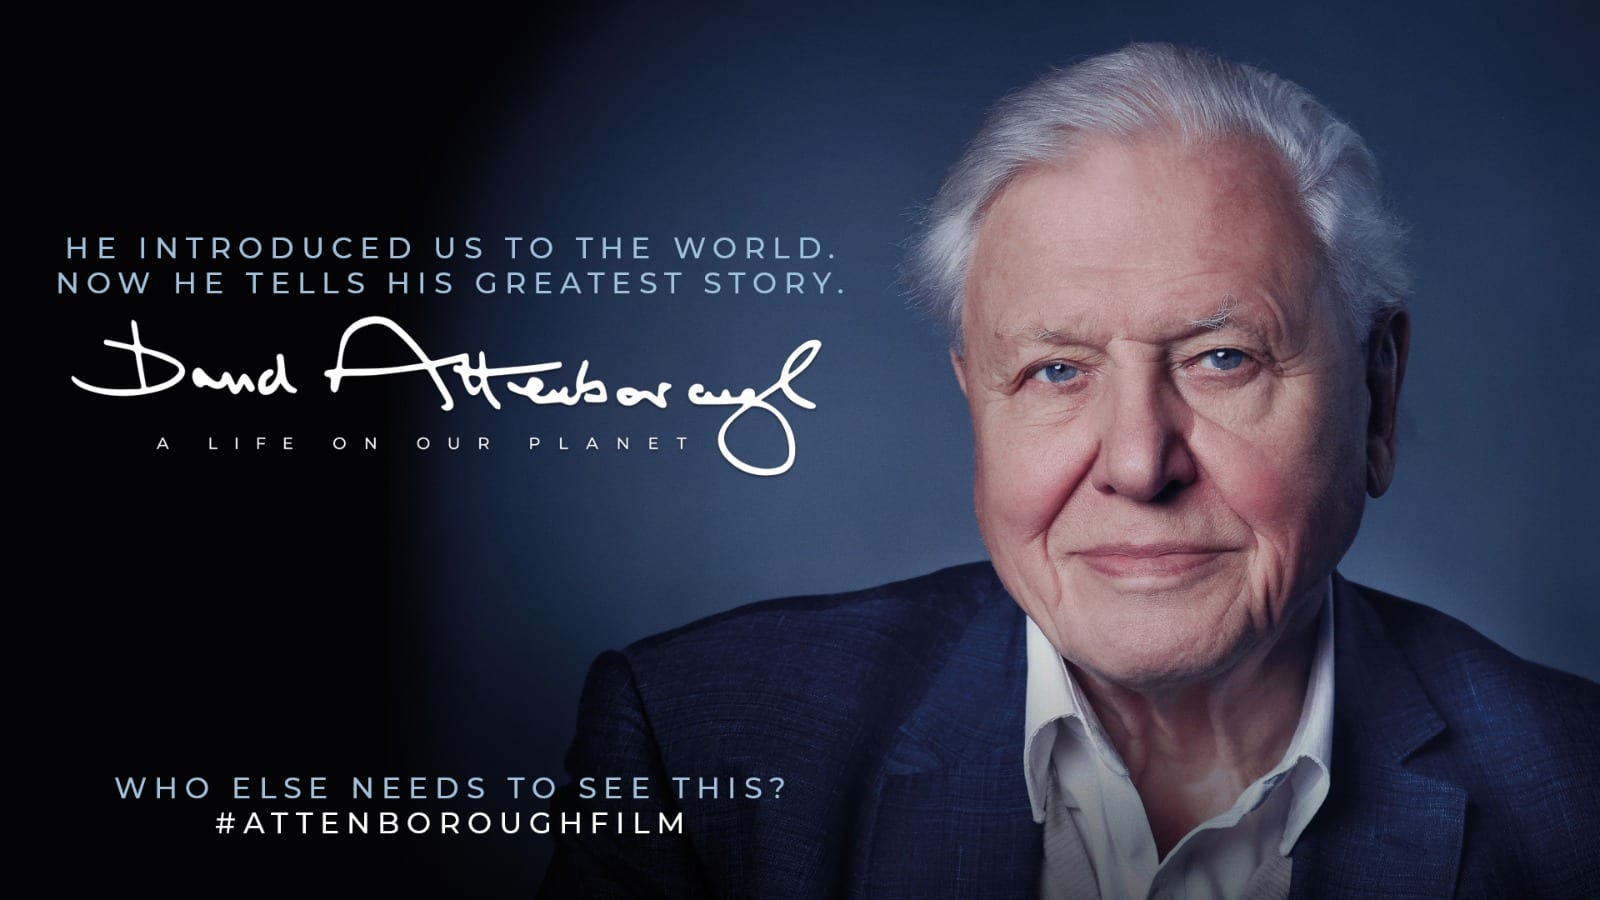 a Life on Our Planet David Attenborough